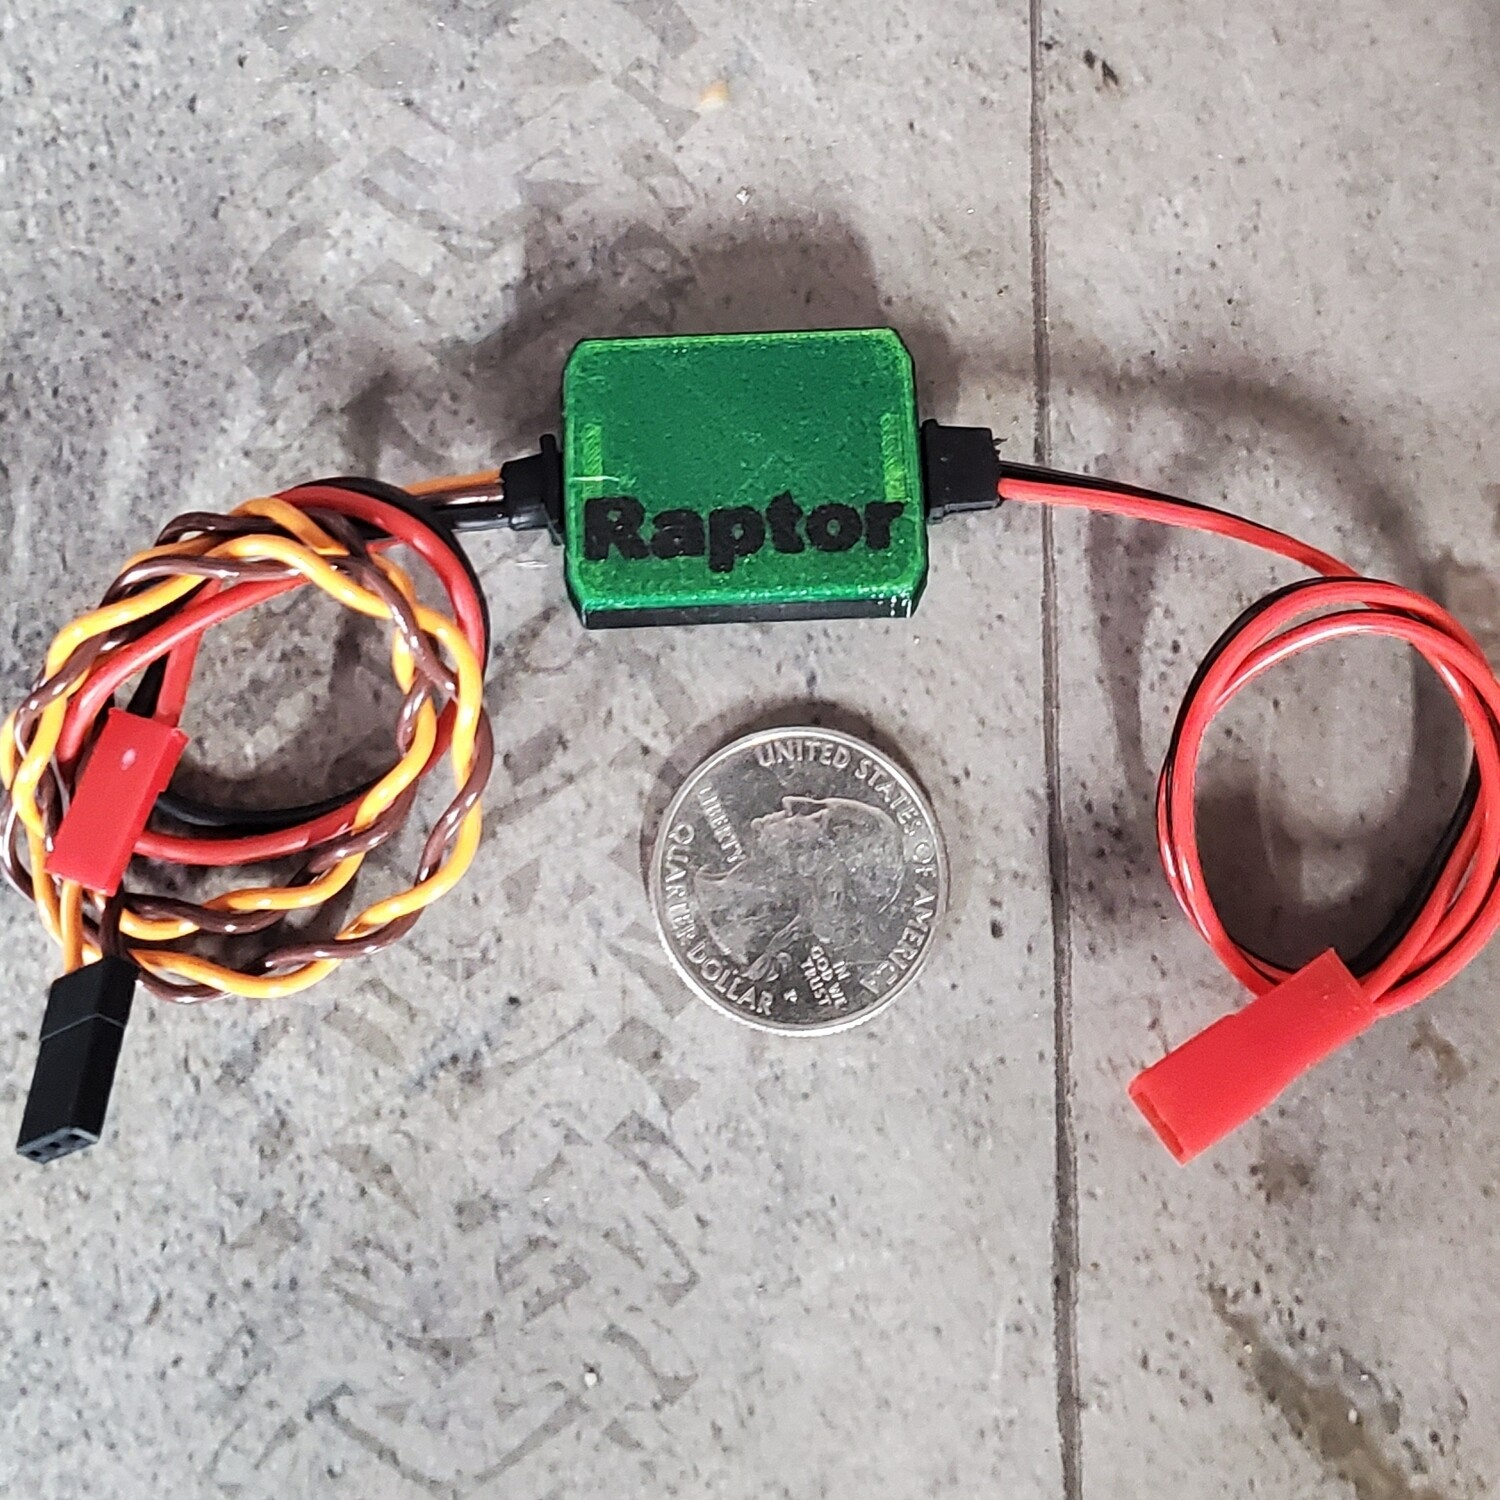 The Raptor Plug and Pull winch controller